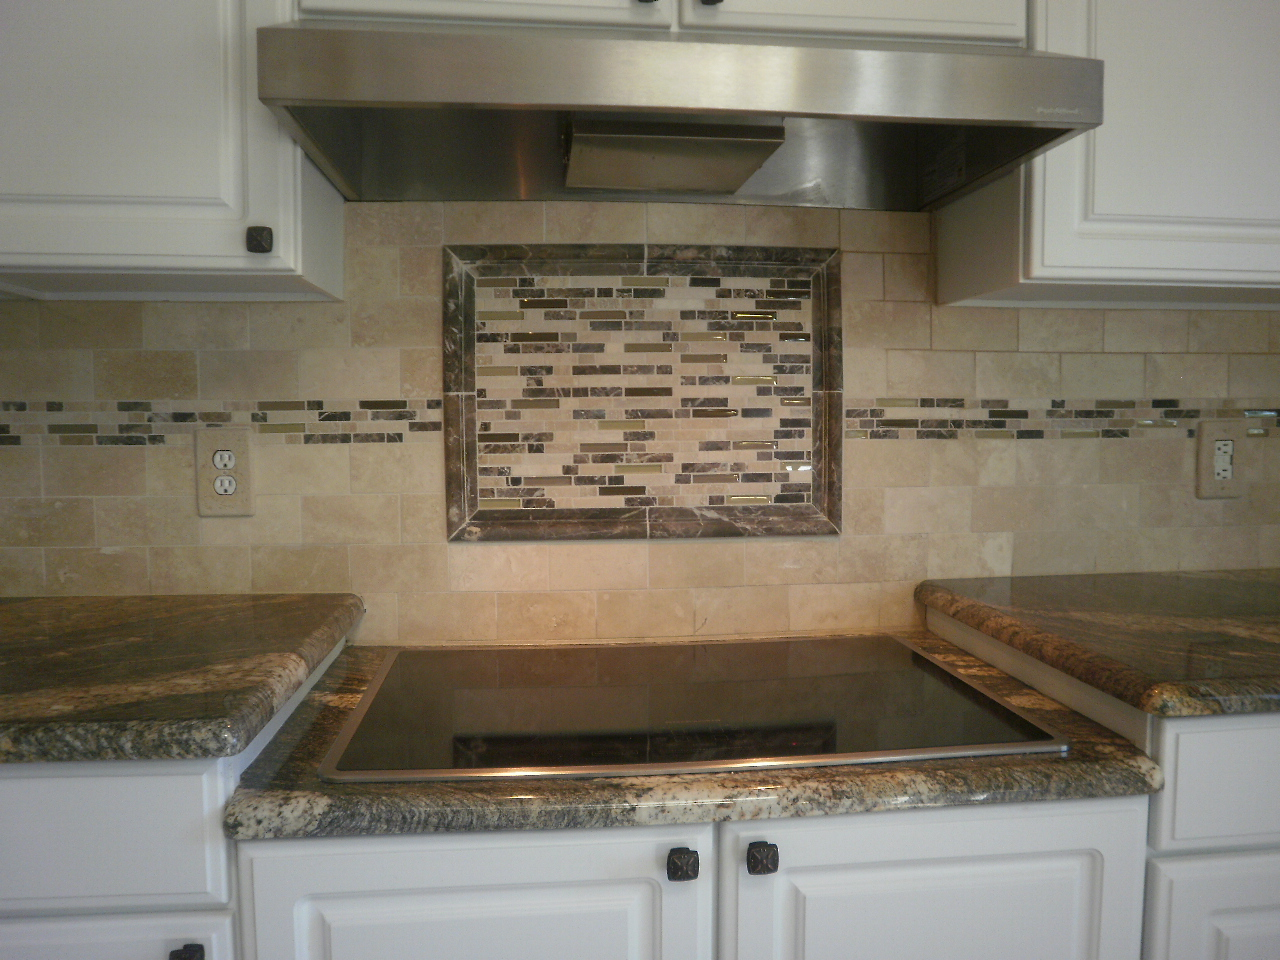 Kitchen backsplash ideas glass tile afreakatheart - Kitchen backsplash tile ...